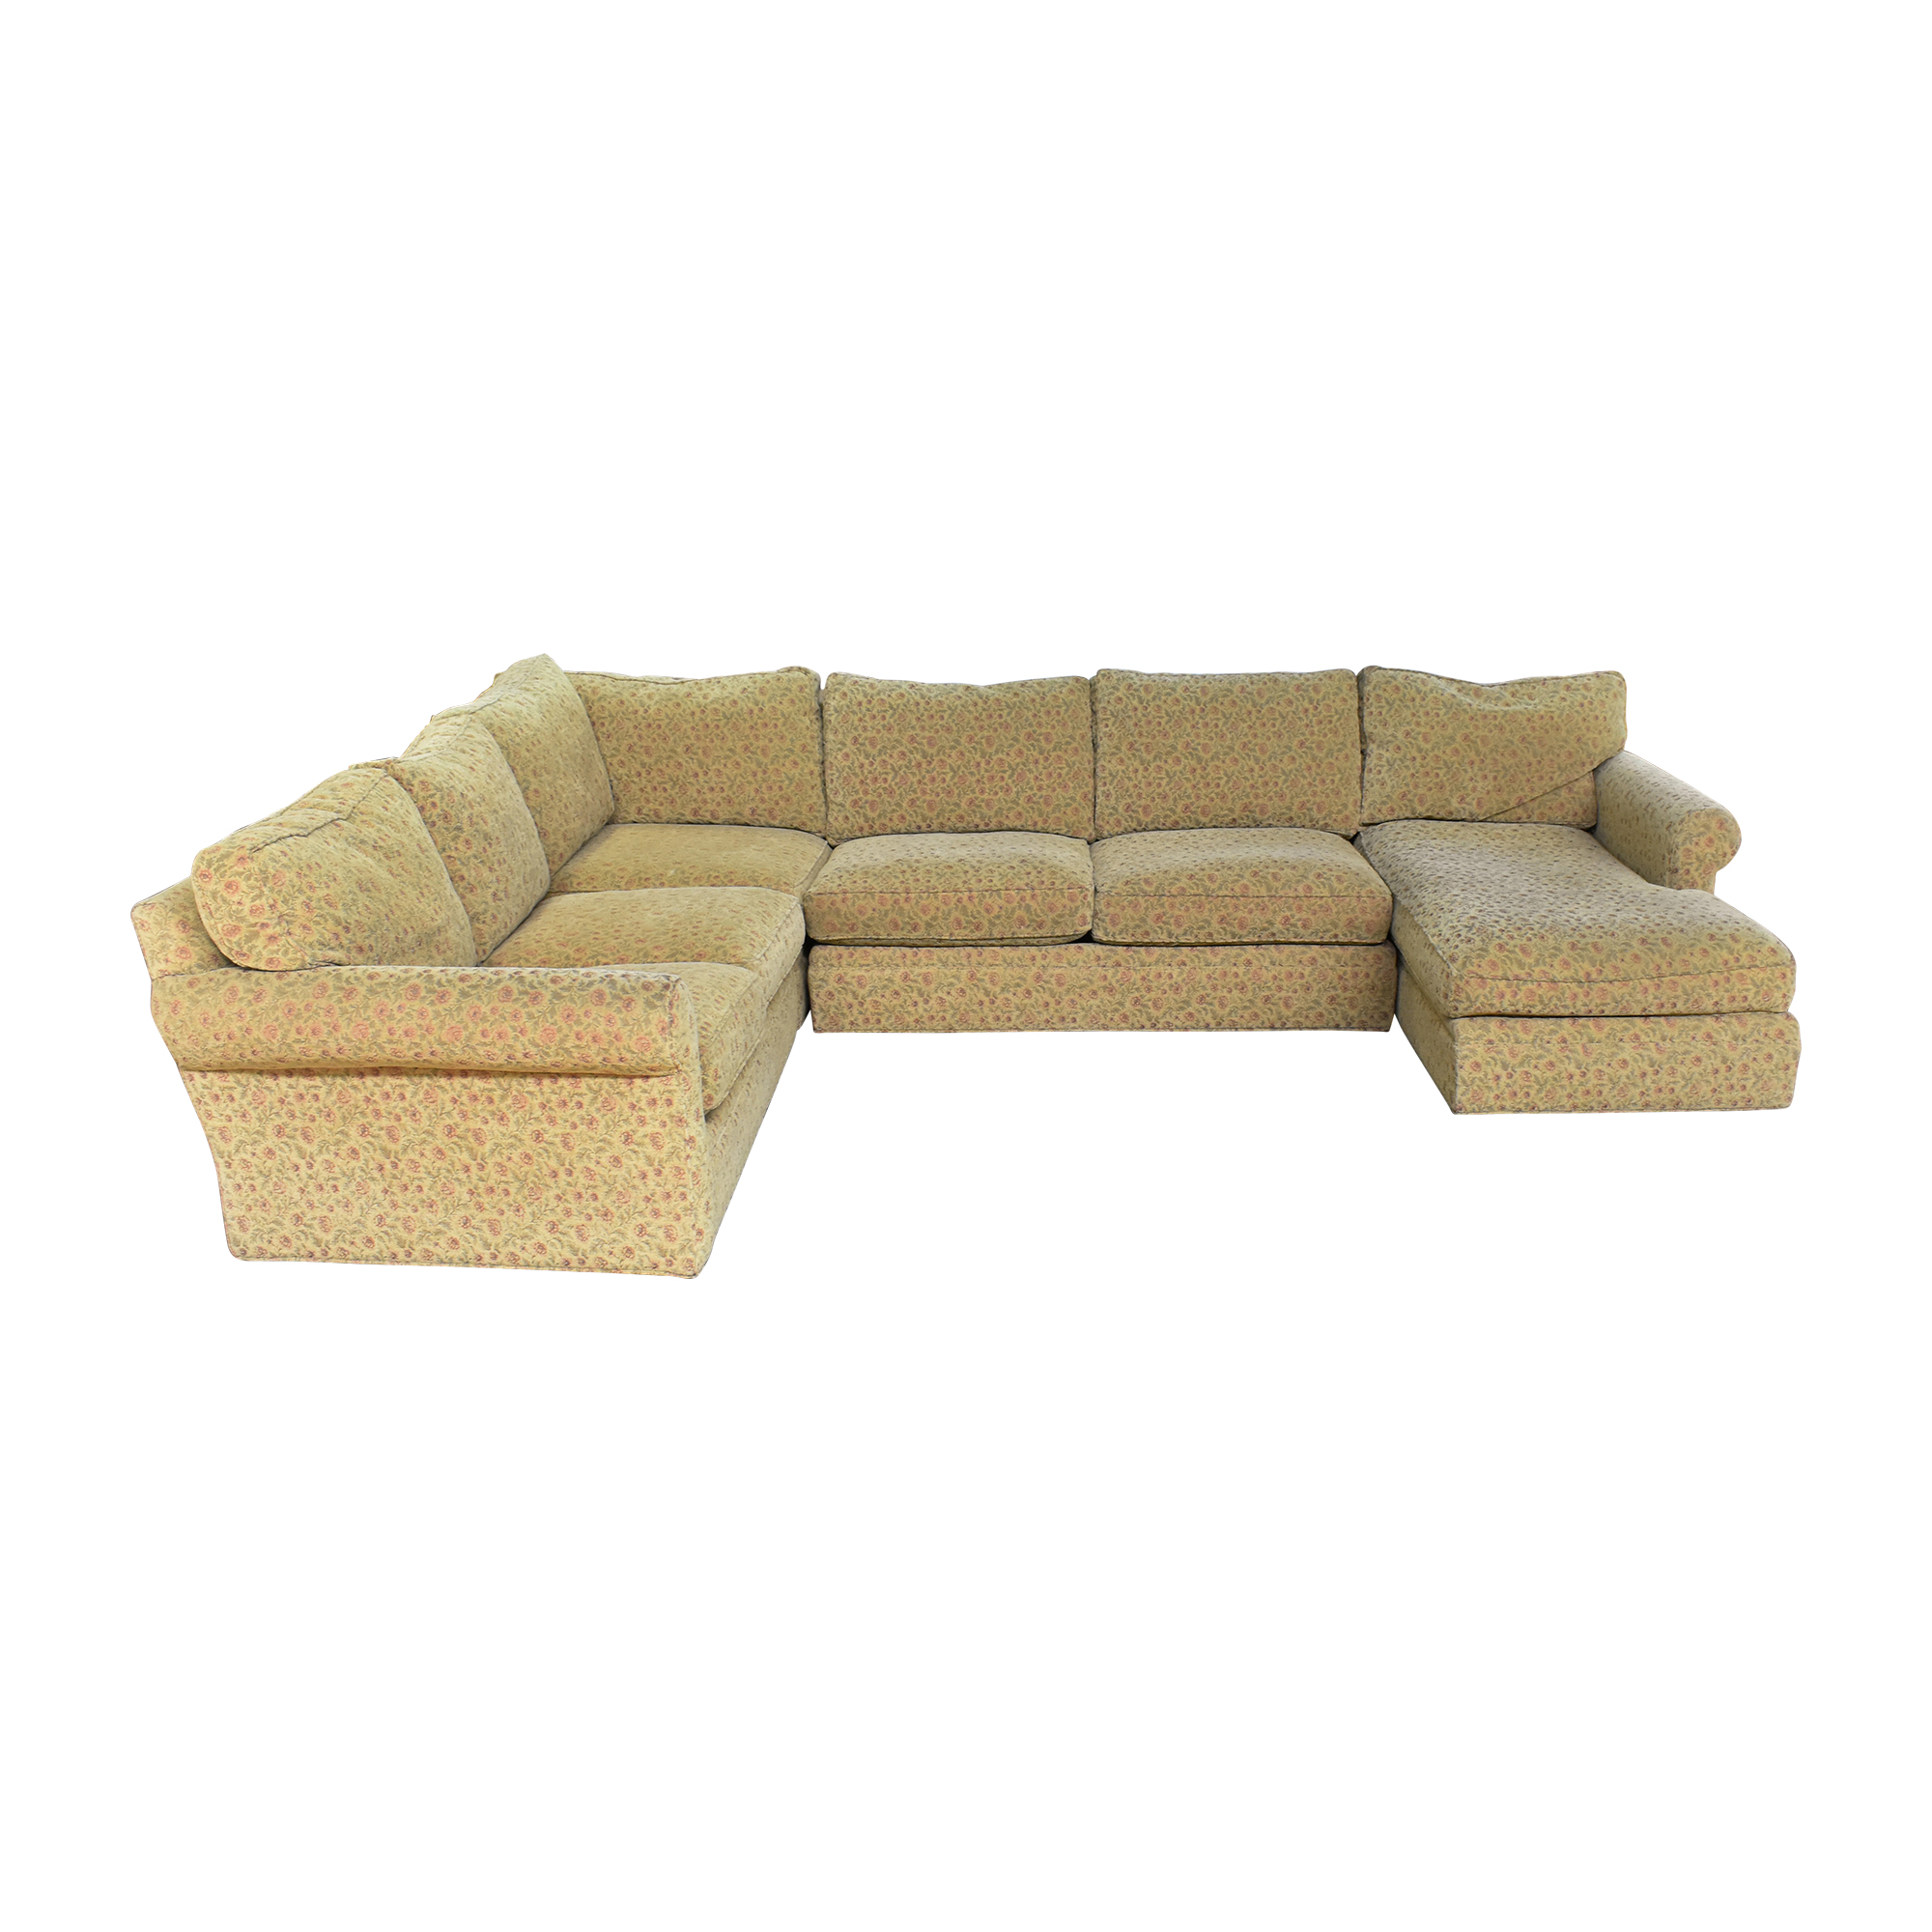 shop Crate & Barrel Huntley Chaise U Sectional Sofa Crate & Barrel Sectionals